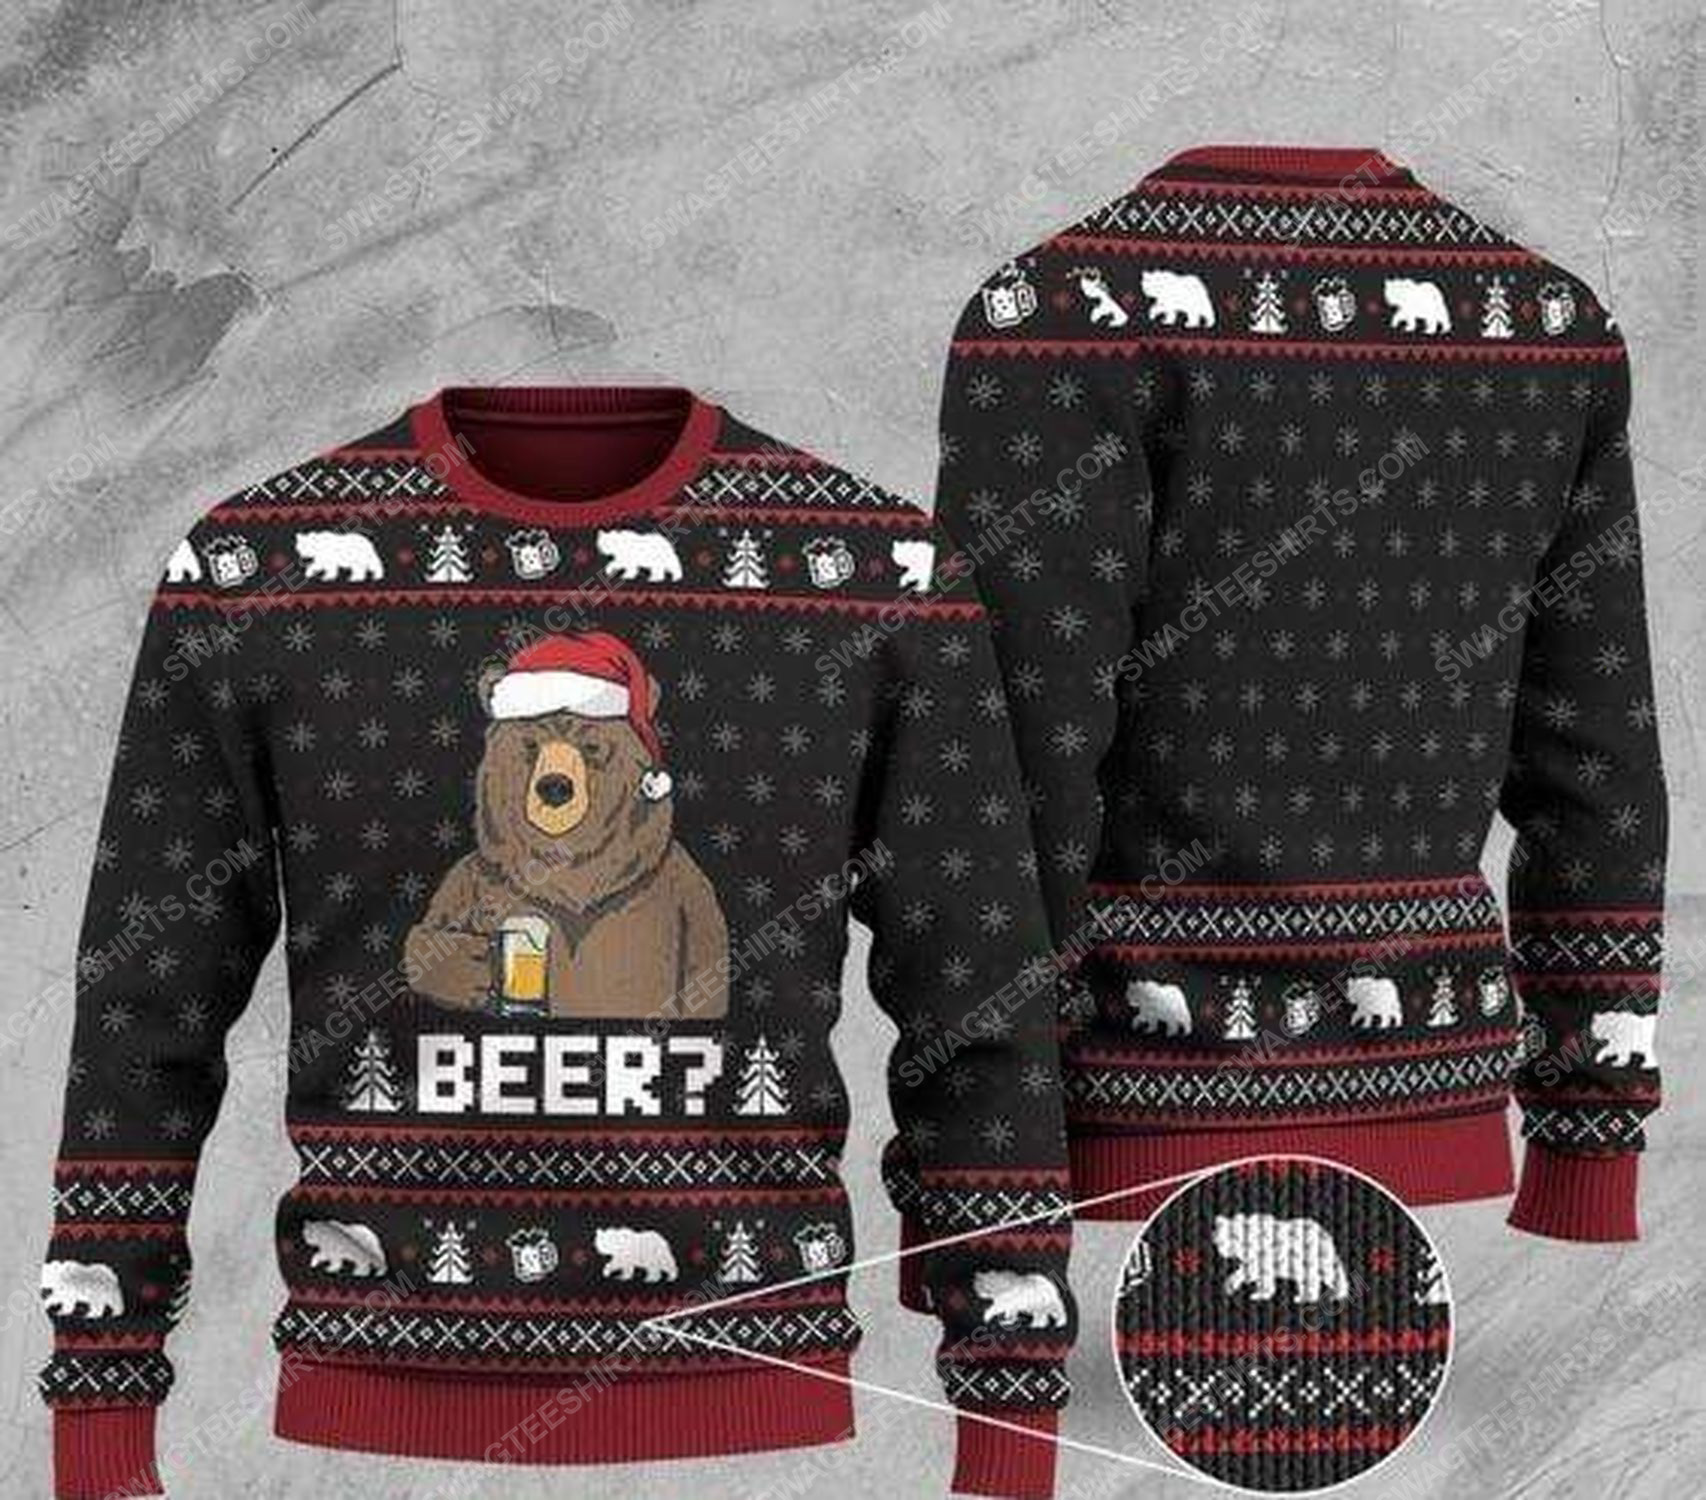 Bear with beer all over print ugly christmas sweater 1 - Copy (2)